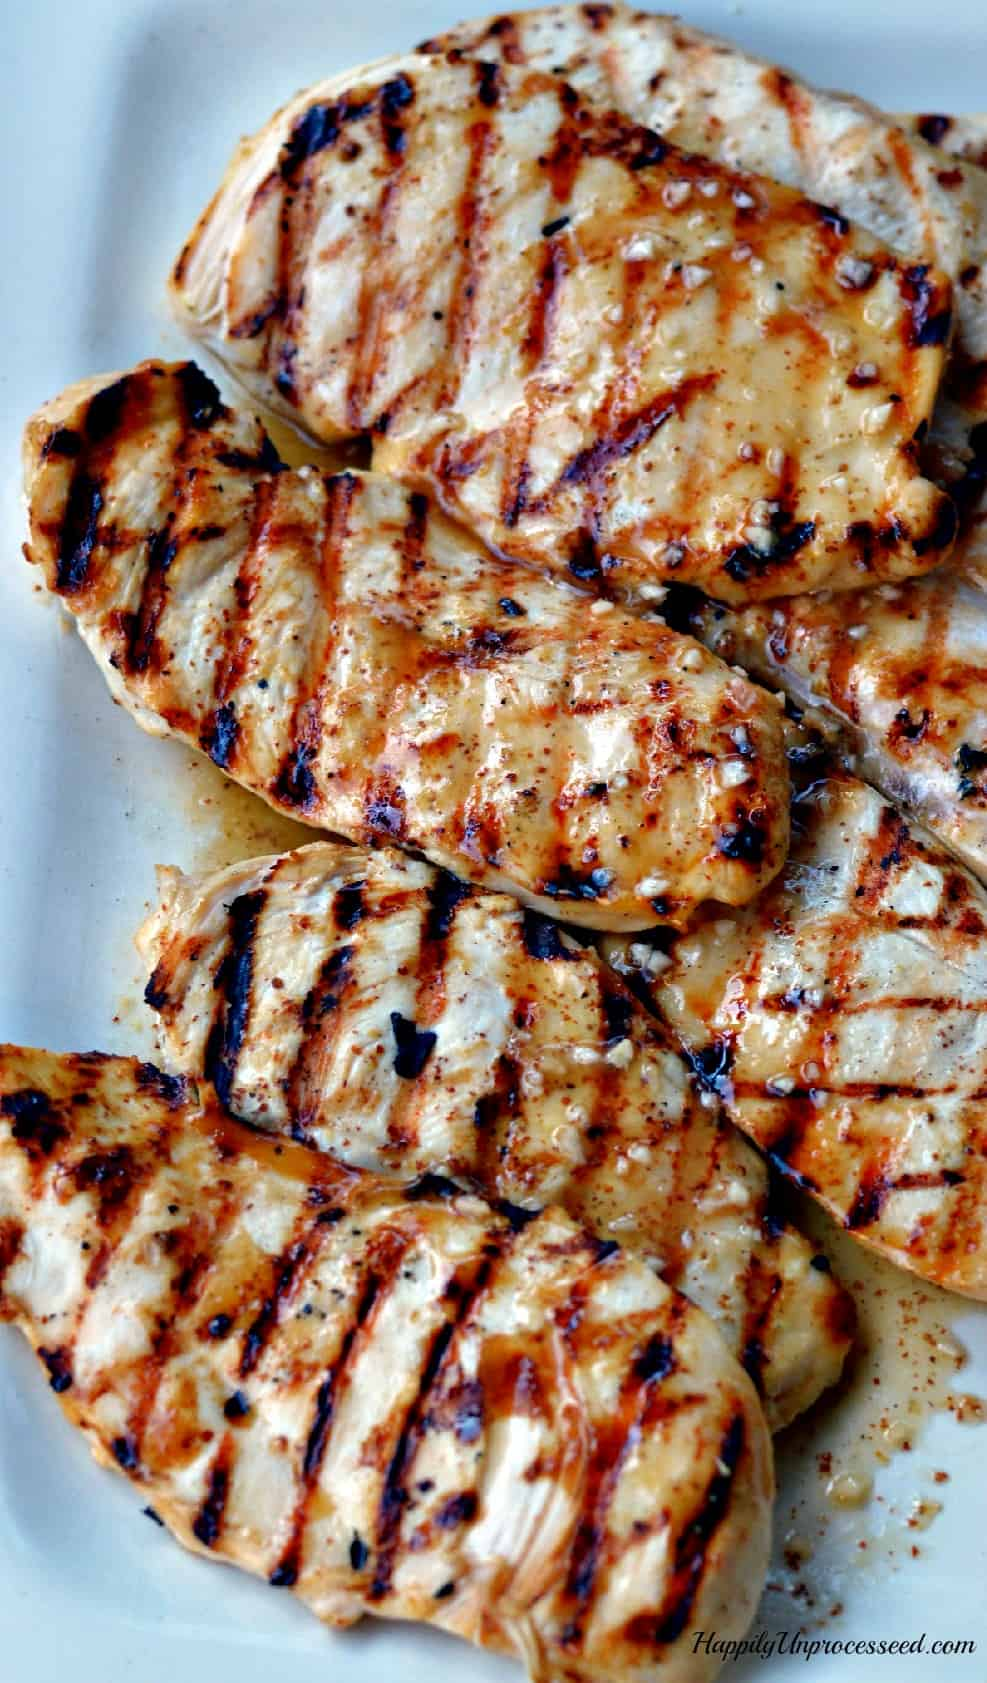 Basic, fool proof grilled chickne marinade